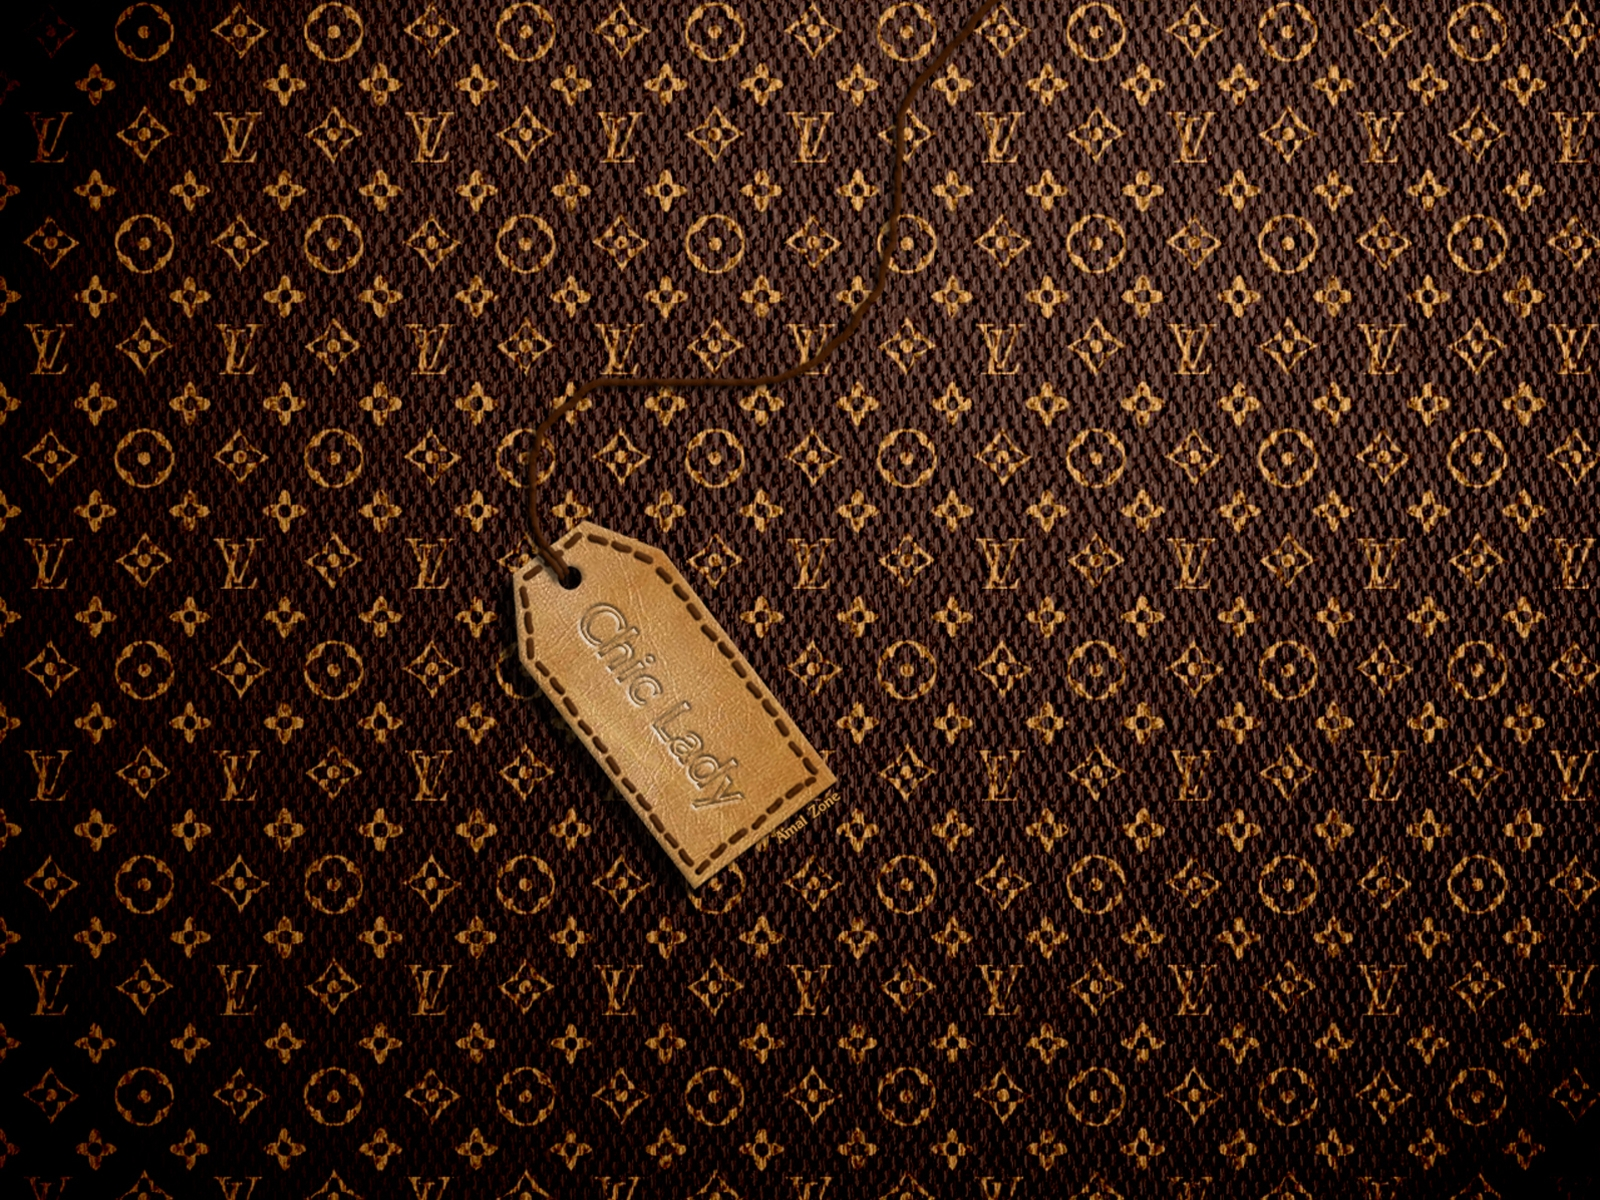 Louis Vuitton Wallpaper HD Wallpapers Desktop 1600x1200